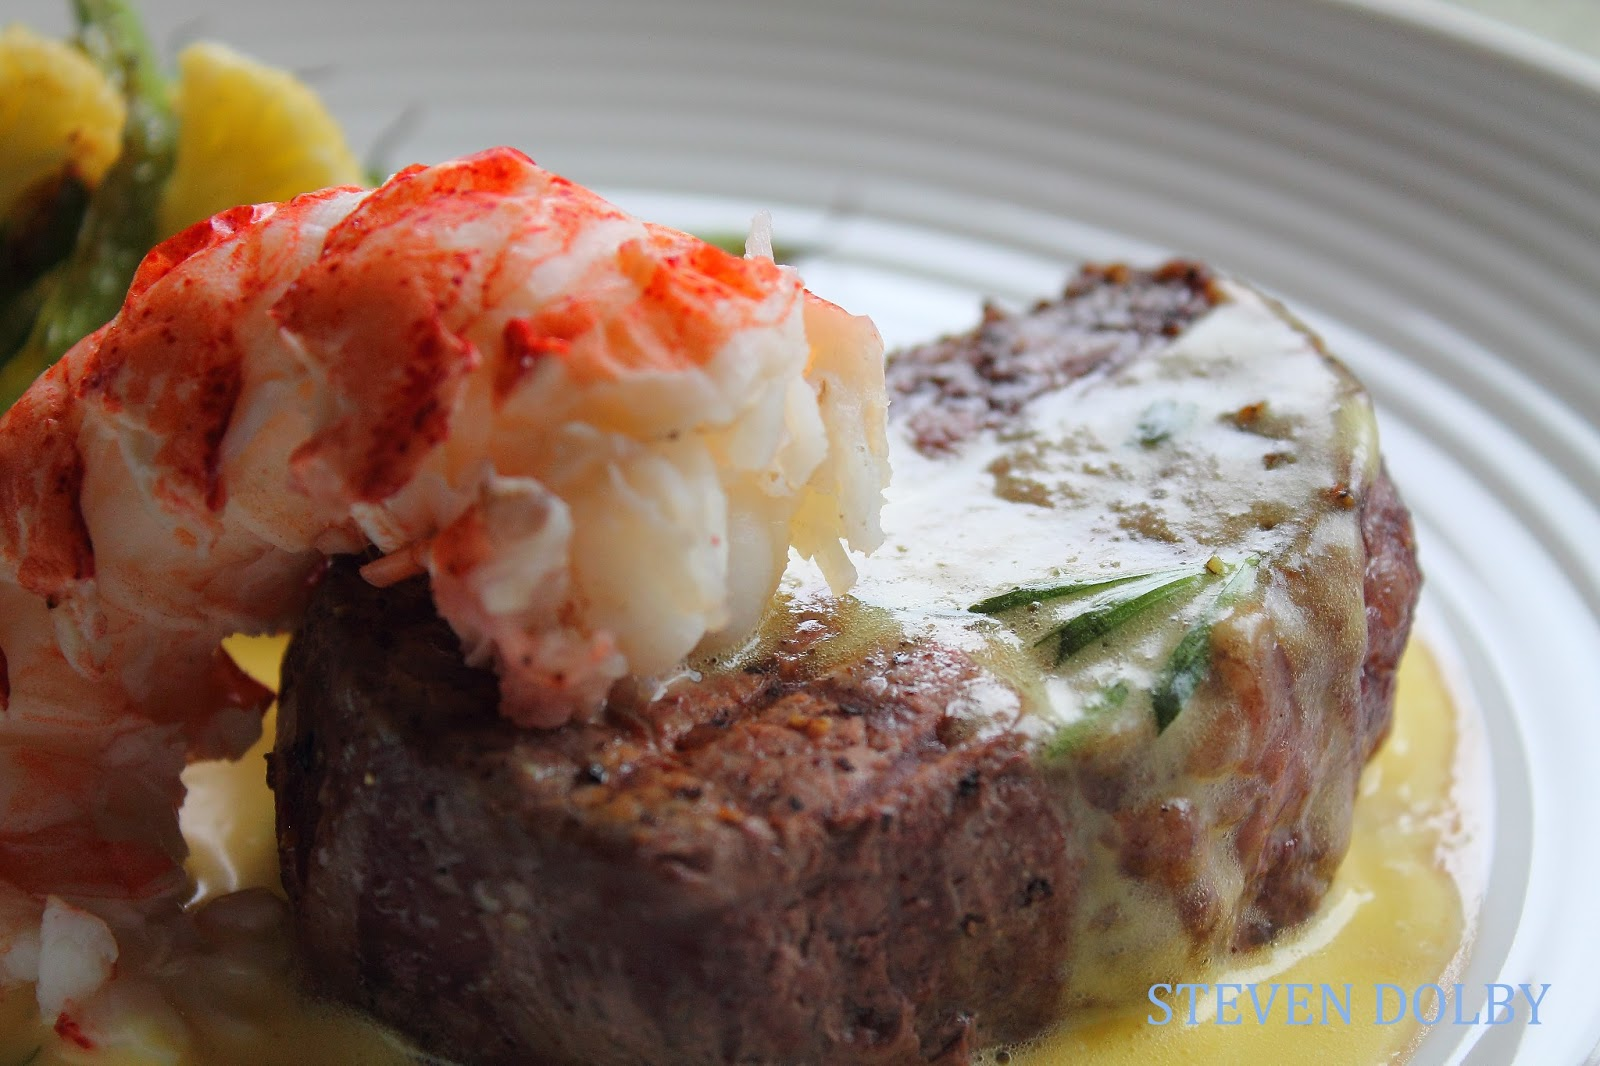 filet mignon and Lobster tail with Bearnaise sauce by Steven Dolby